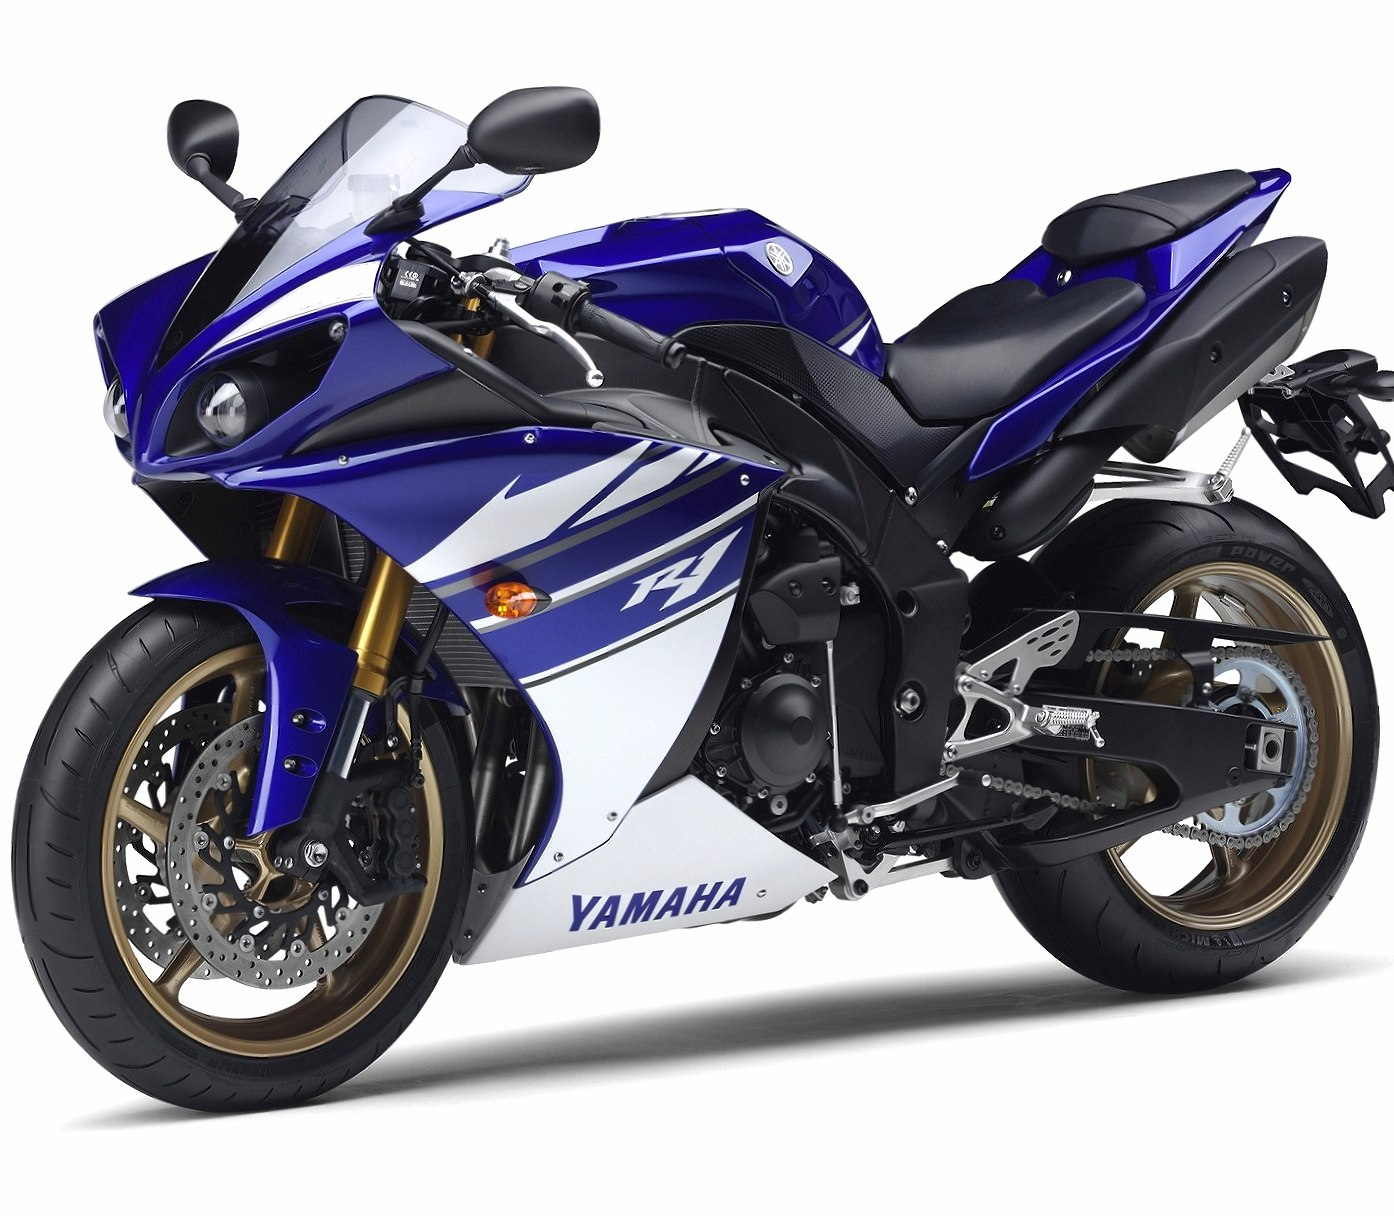 yamaha r15 wallpaper hd download